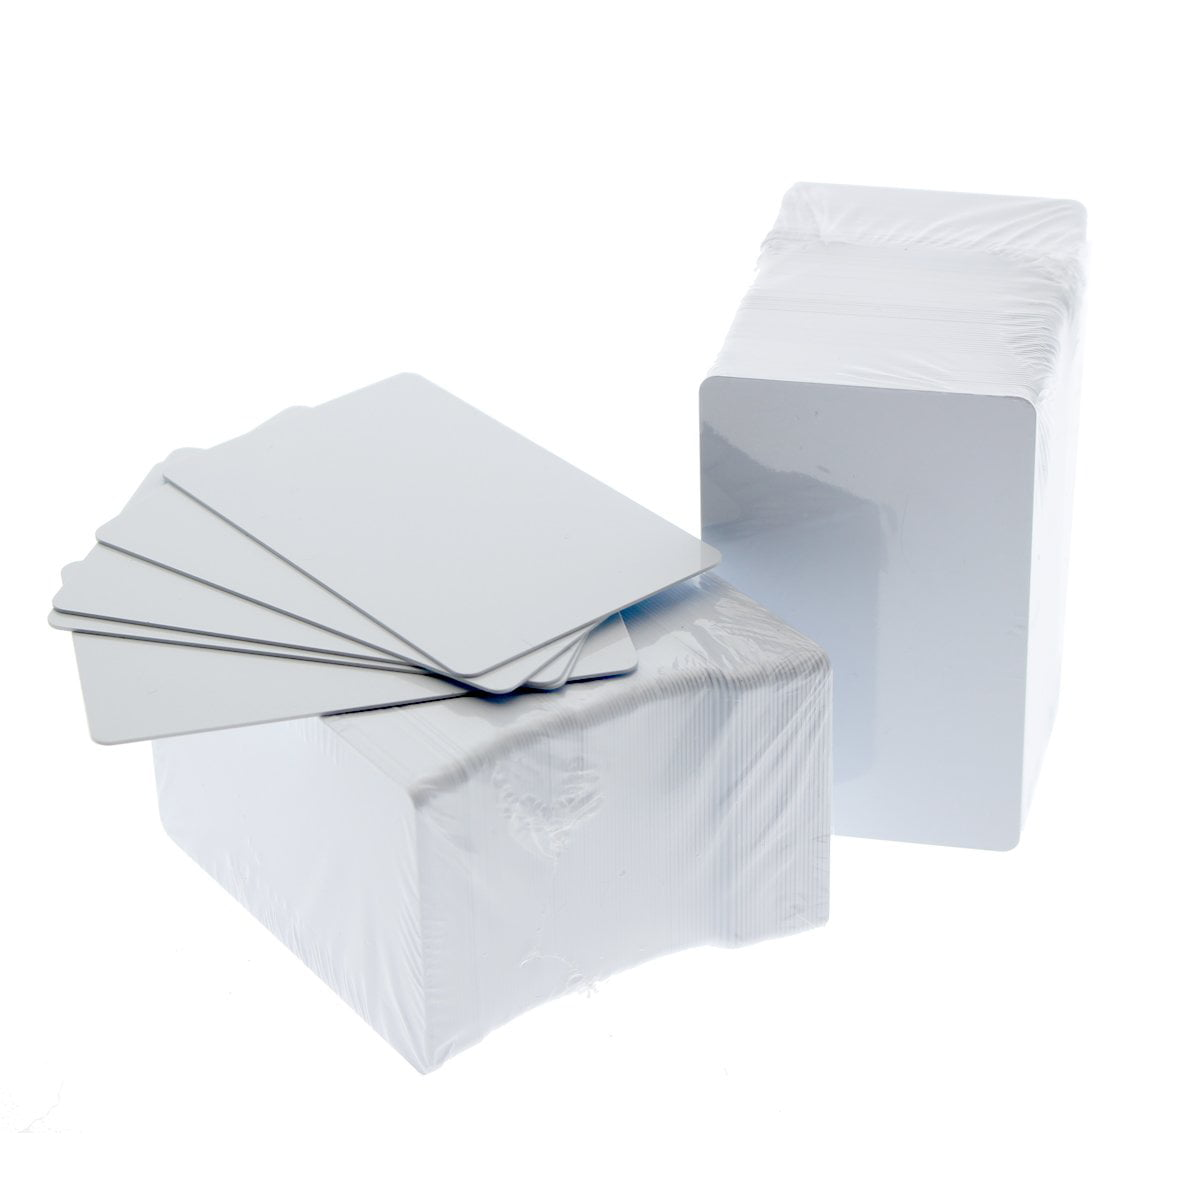 100 Pack Premium Blank PVC Cards for ID Badge Printers Graphic Quality White Plastic CR80 30 Mil (CR8030) By... by Specialist ID